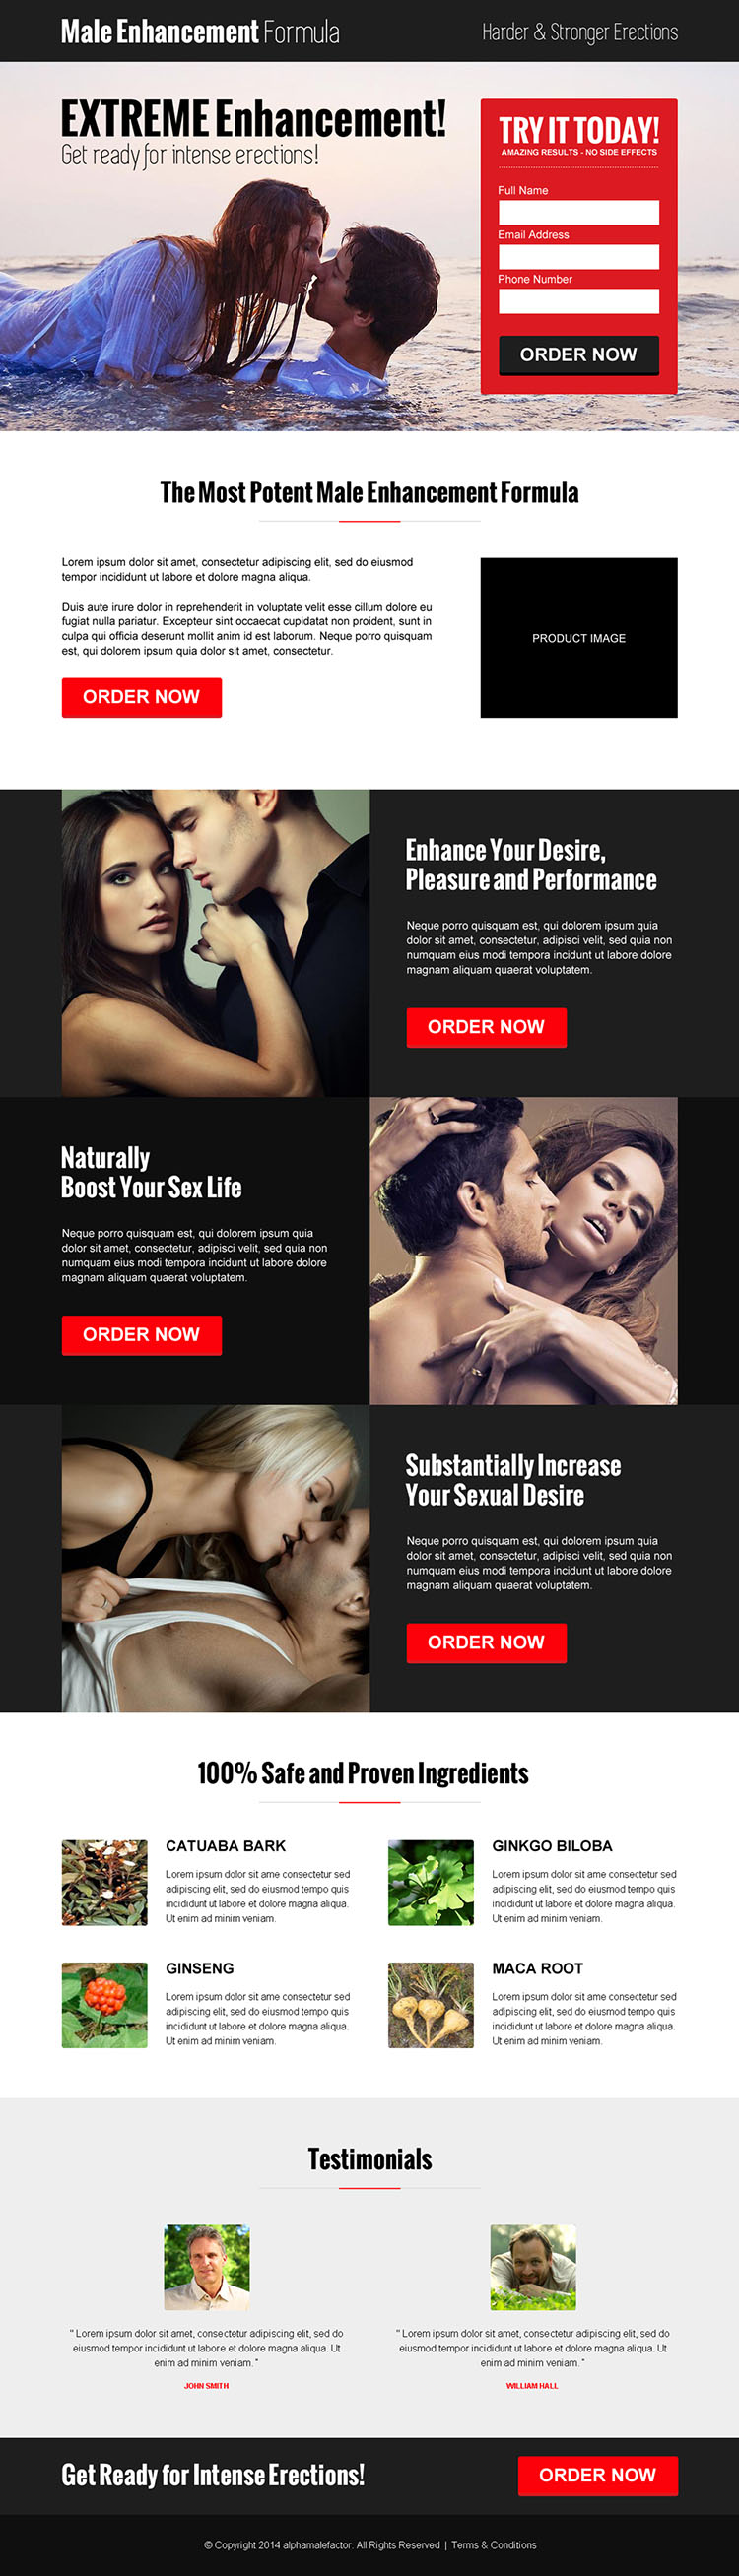 modern and converting lead capture responsive landing page design for male enhancement